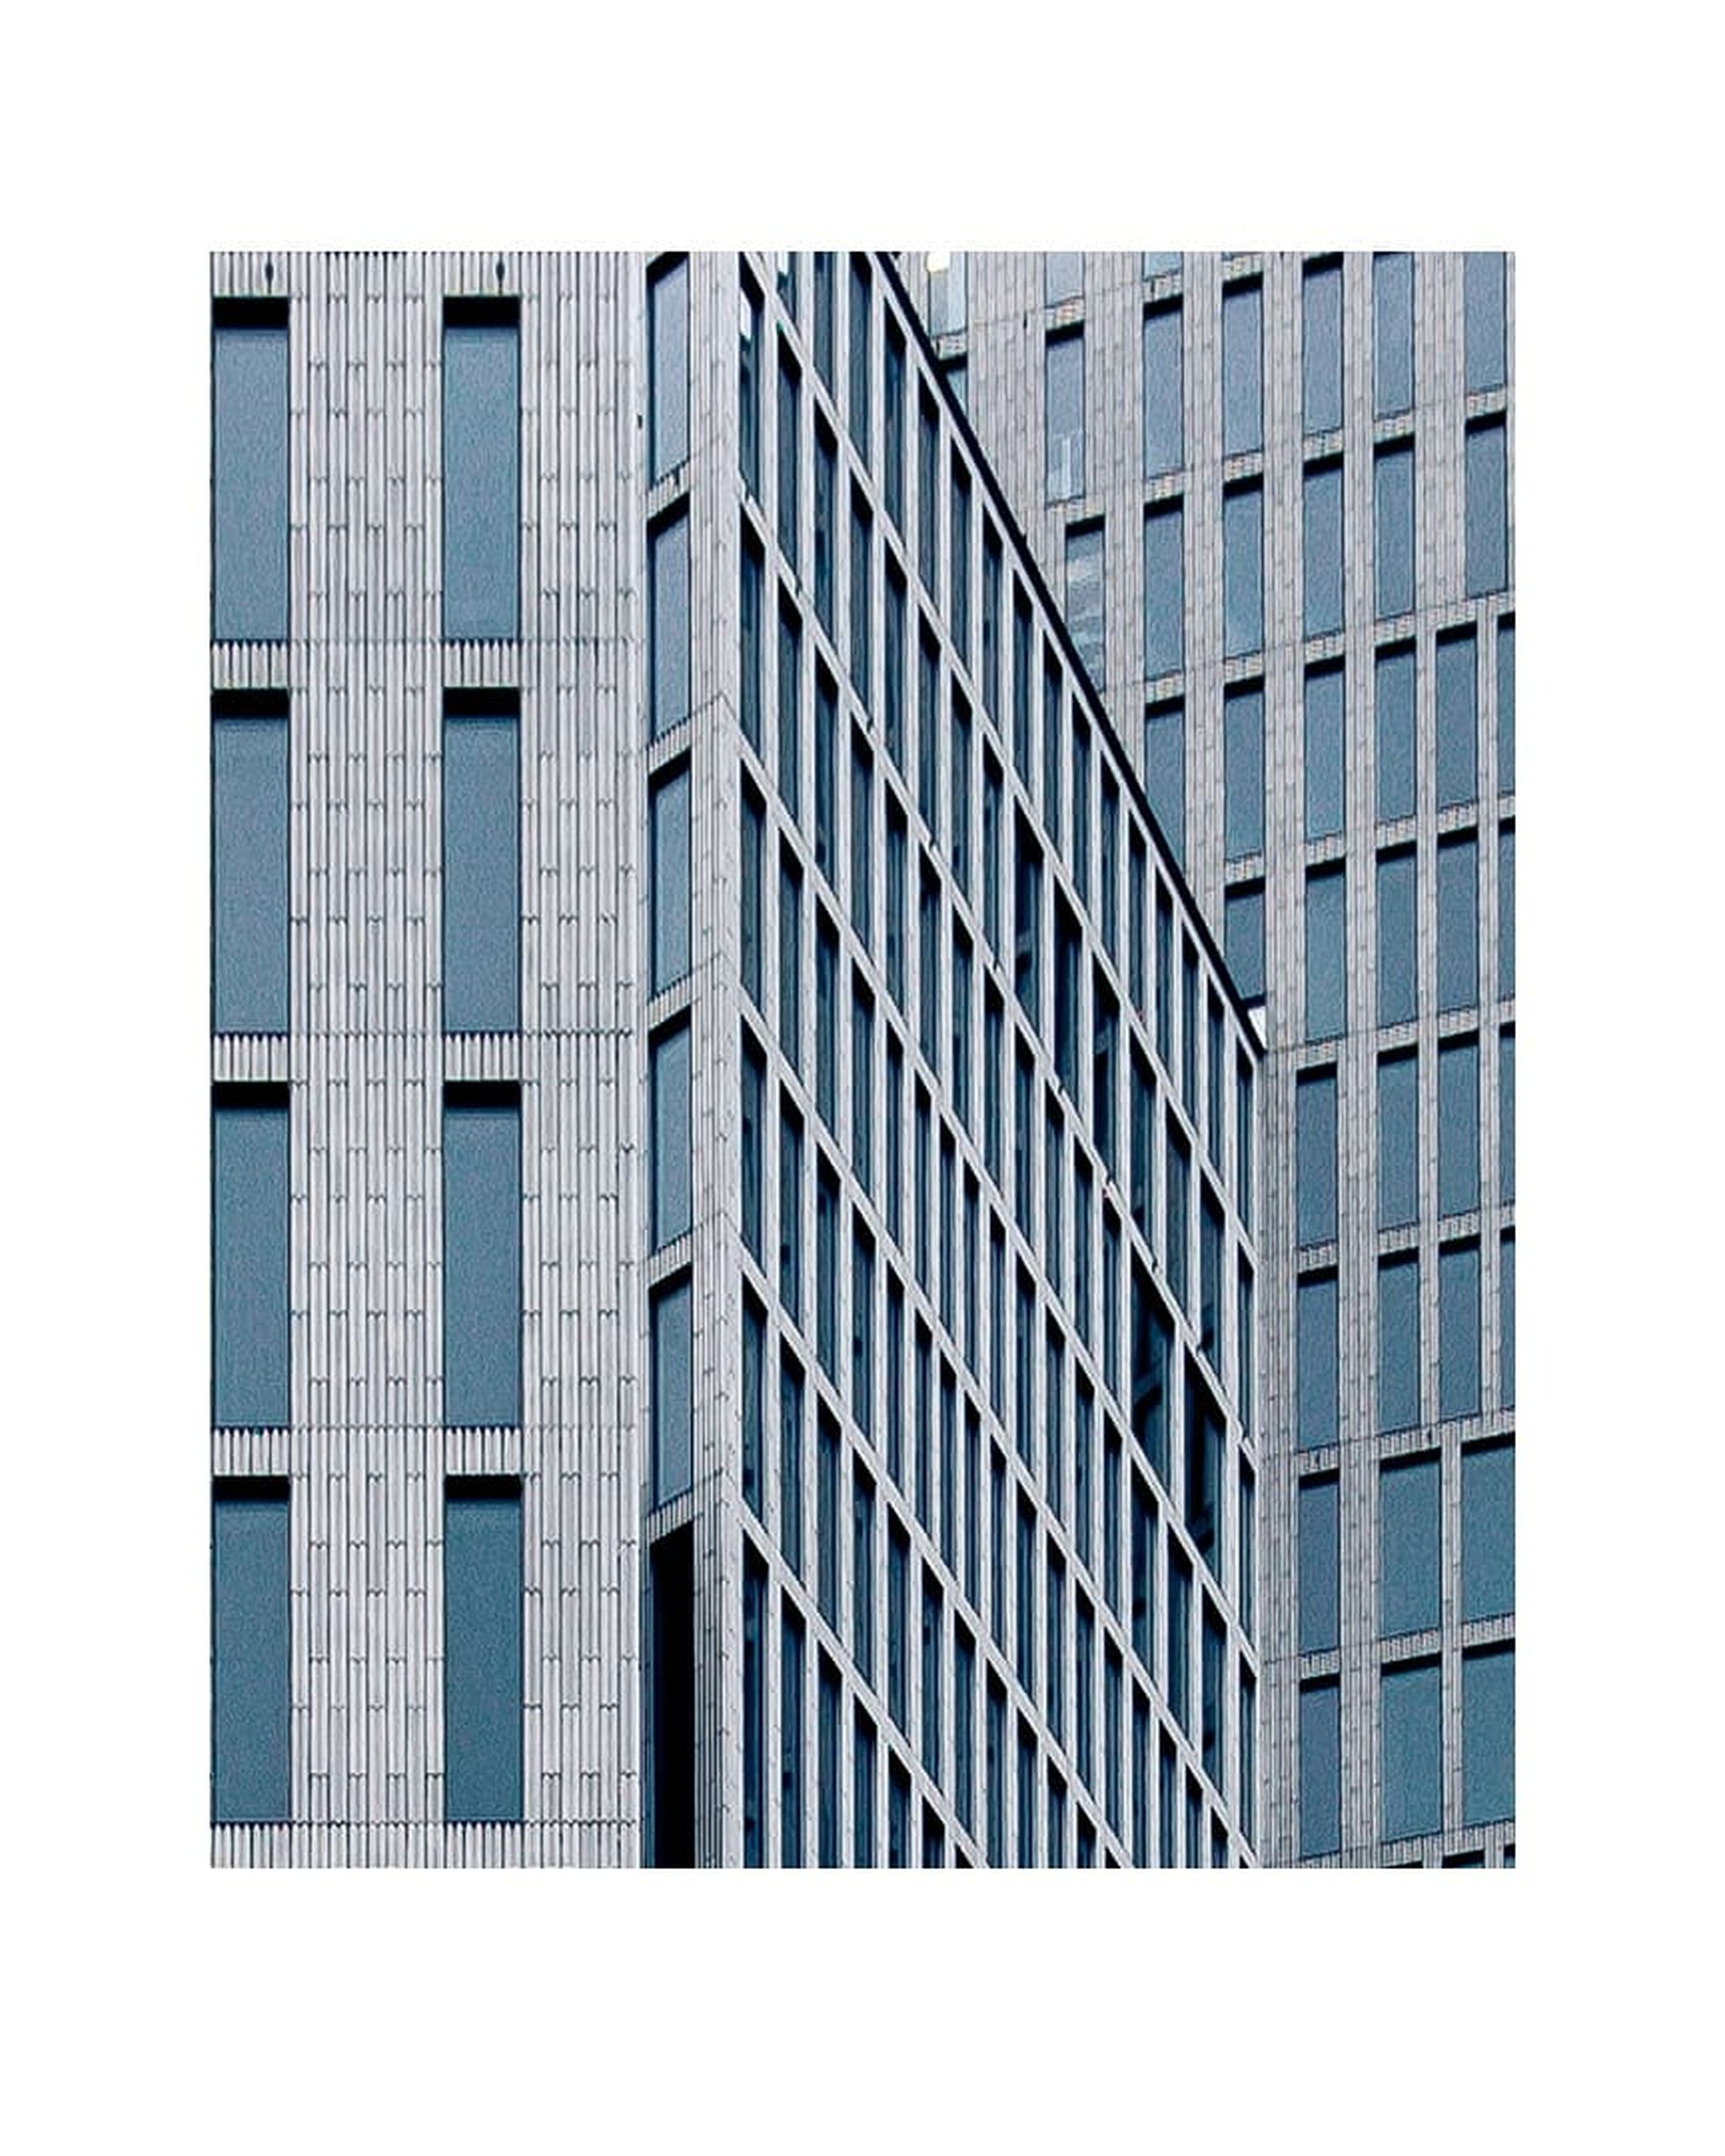 architecture, built structure, building exterior, building, window, city, modern, office, office building exterior, glass - material, no people, blue, sky, outdoors, clear sky, pattern, day, control, geometric shape, reflection, skyscraper